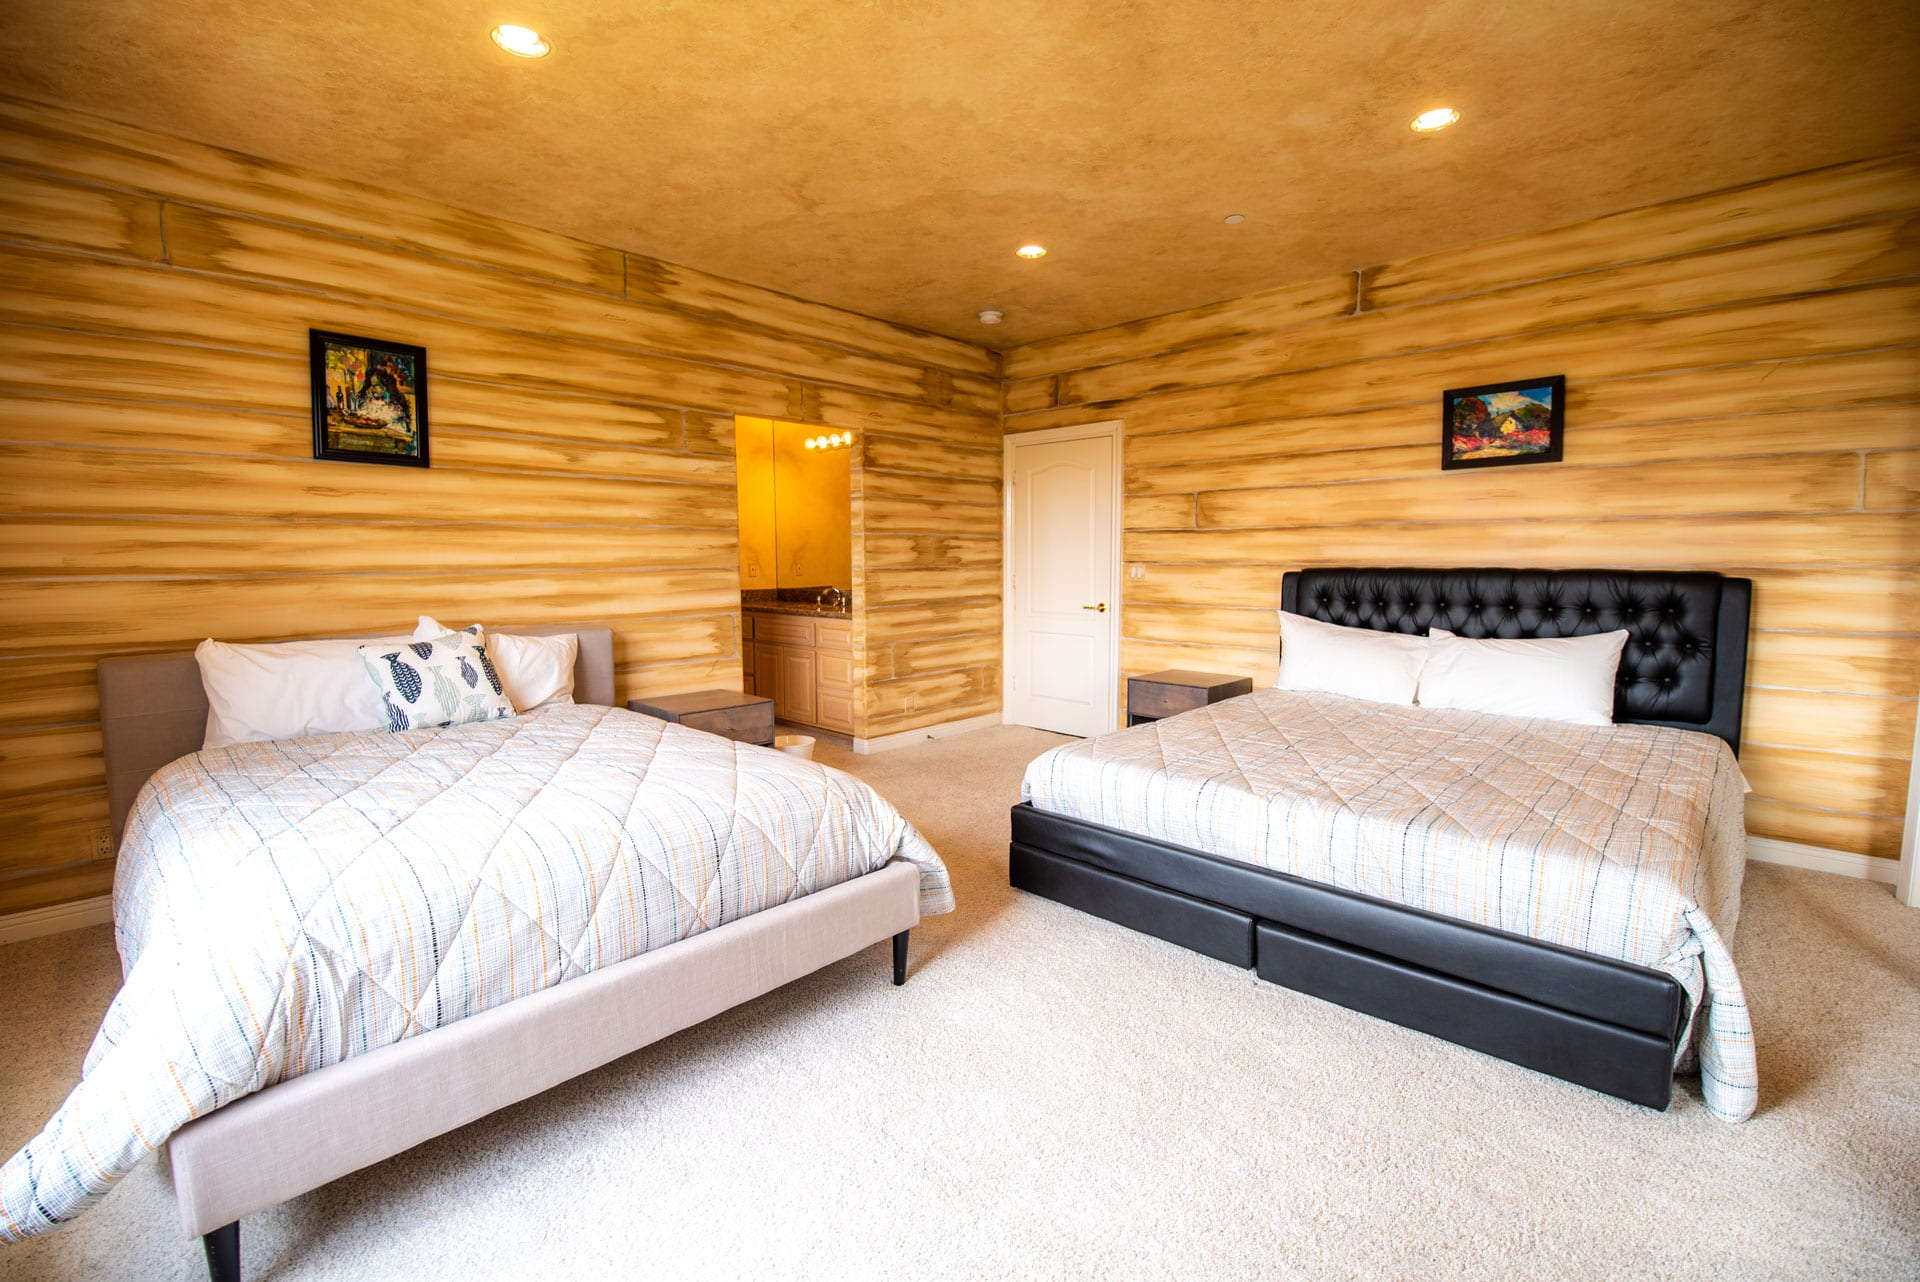 bed room in ventura county